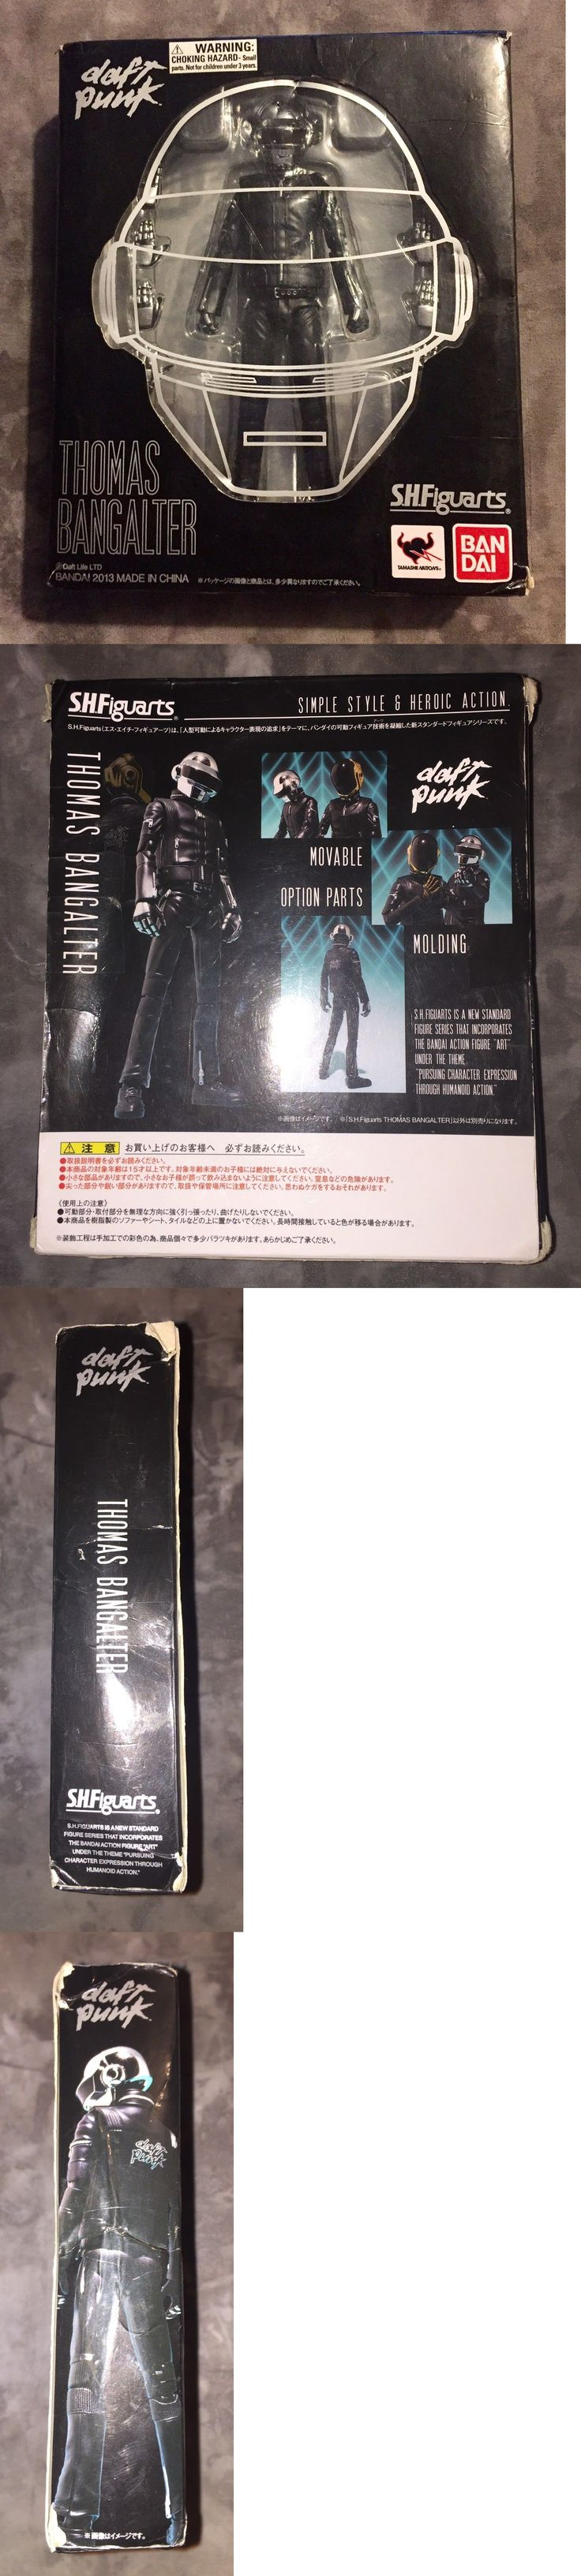 Music 175691: S.H.Figuarts Bandai Daft Punk Thomas Bangalter Movable Action Figure Complete! -> BUY IT NOW ONLY: $75 on eBay!